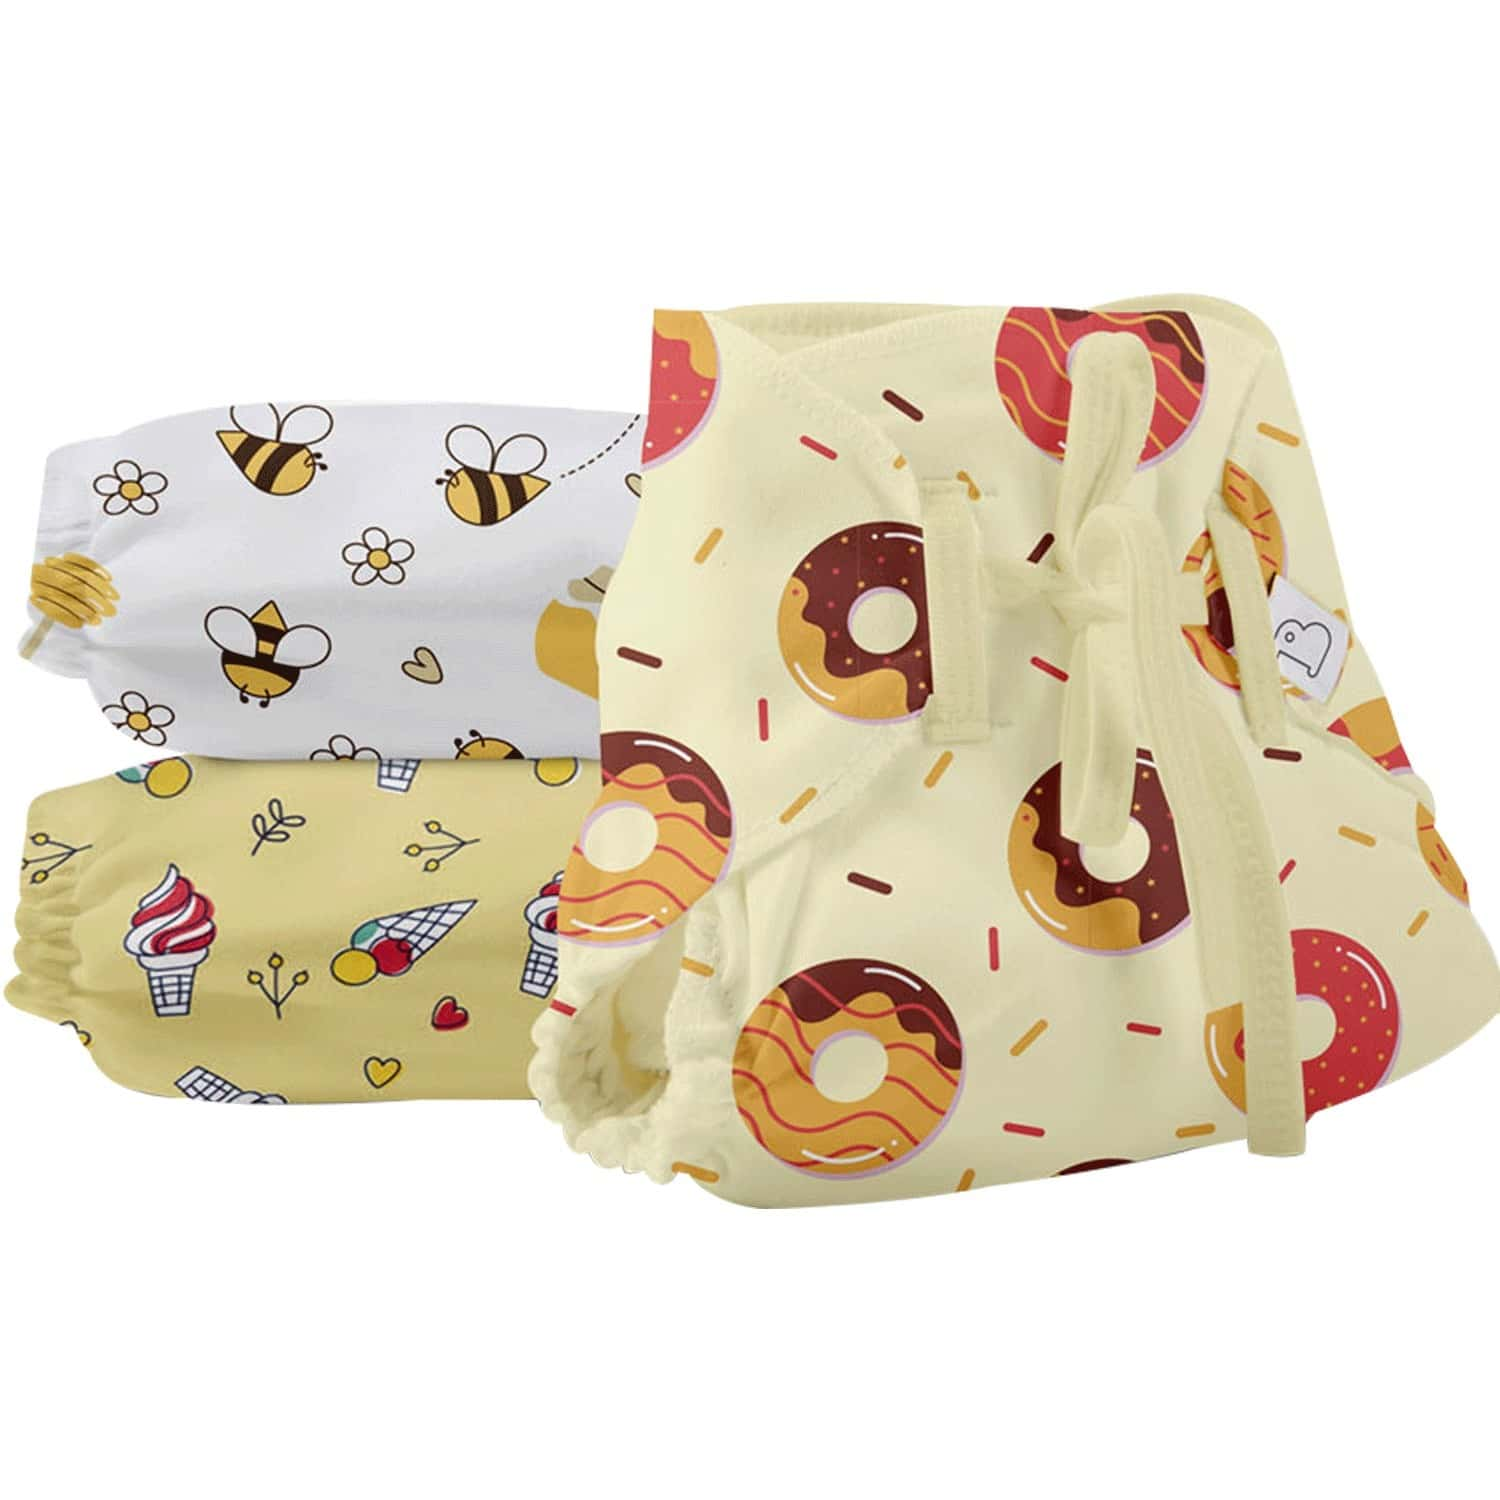 Superbottoms Dry Feel Langot - Pack Of 6 - Organic Cotton Baby Langot/nappy Sweet Tooth, Size 2